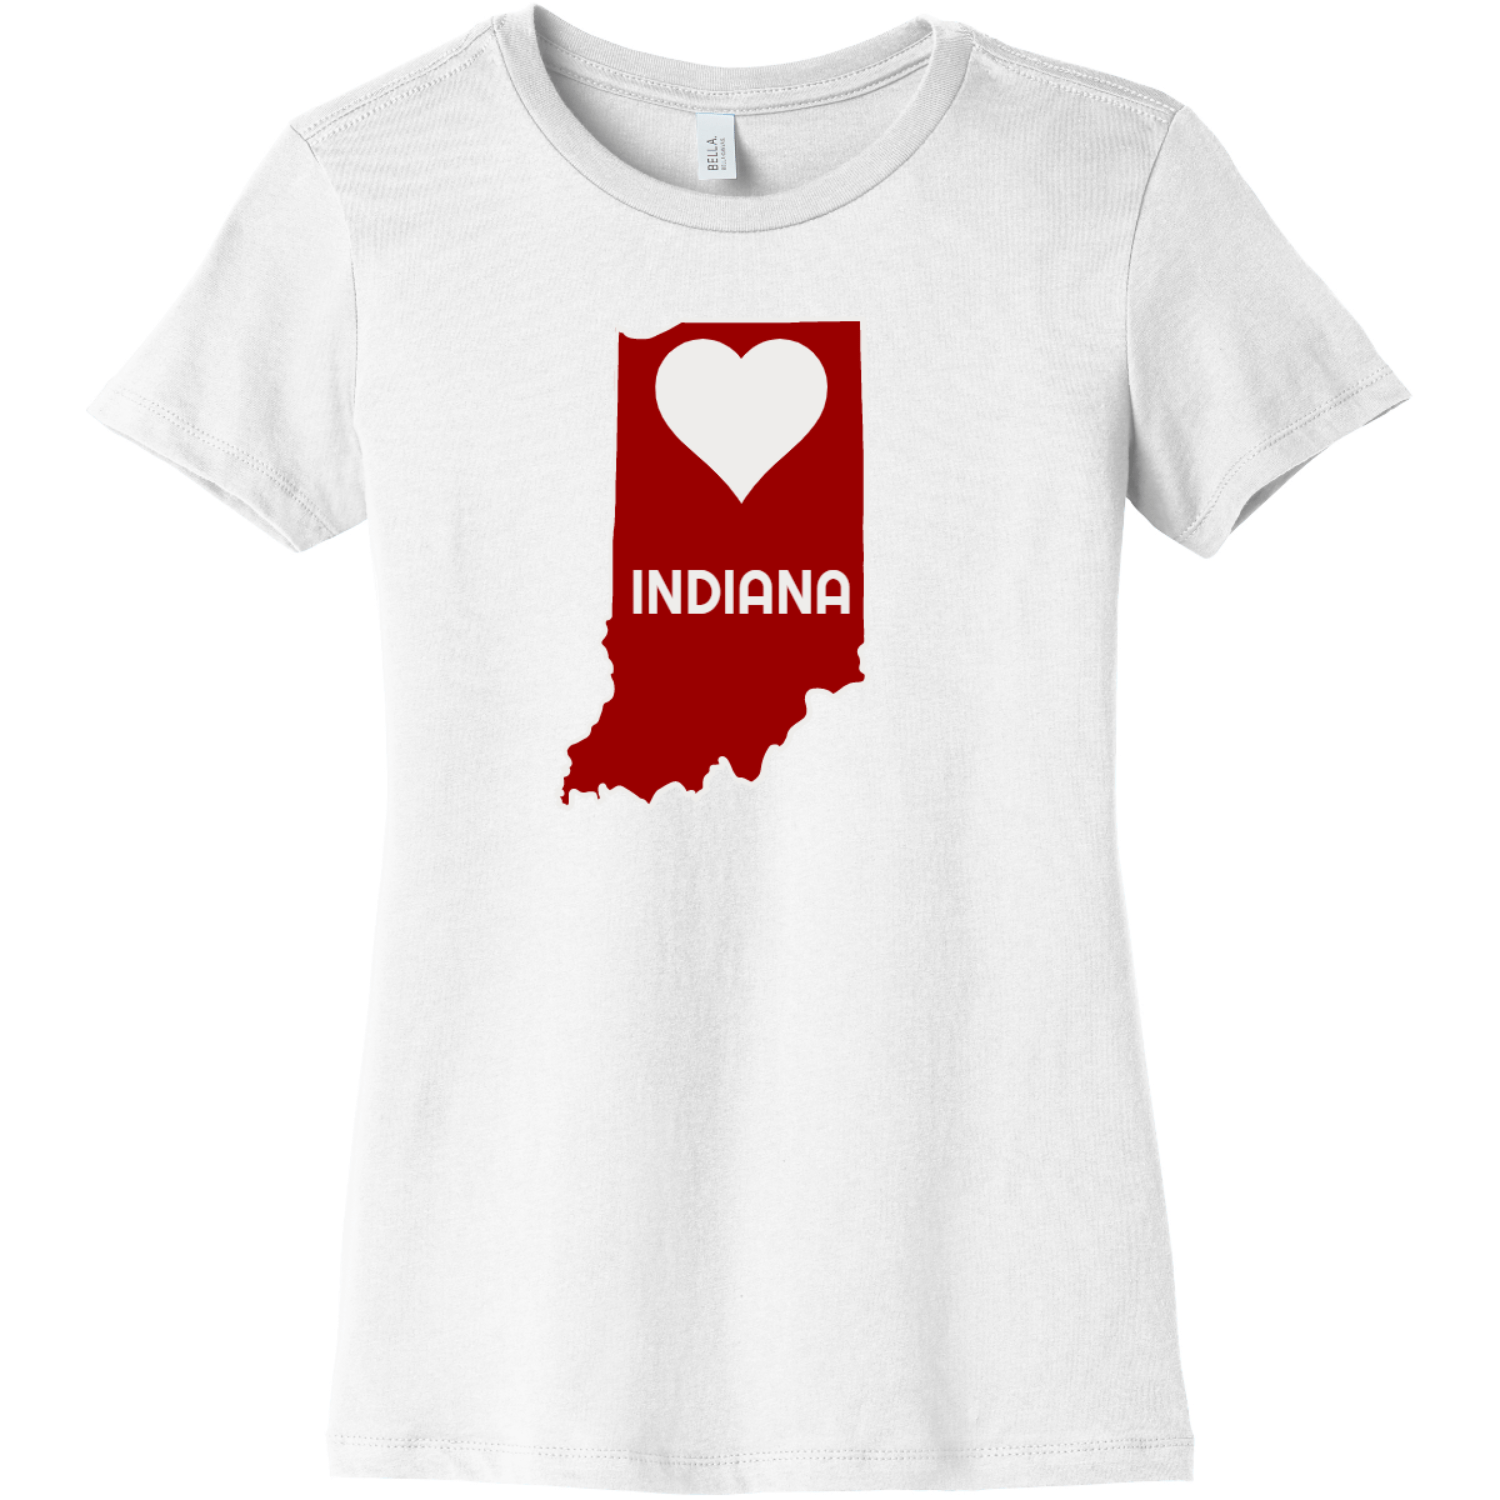 Indiana Heart State T Shirt For Women White Bella Canvas 6004 Ladies The Favorite Tee